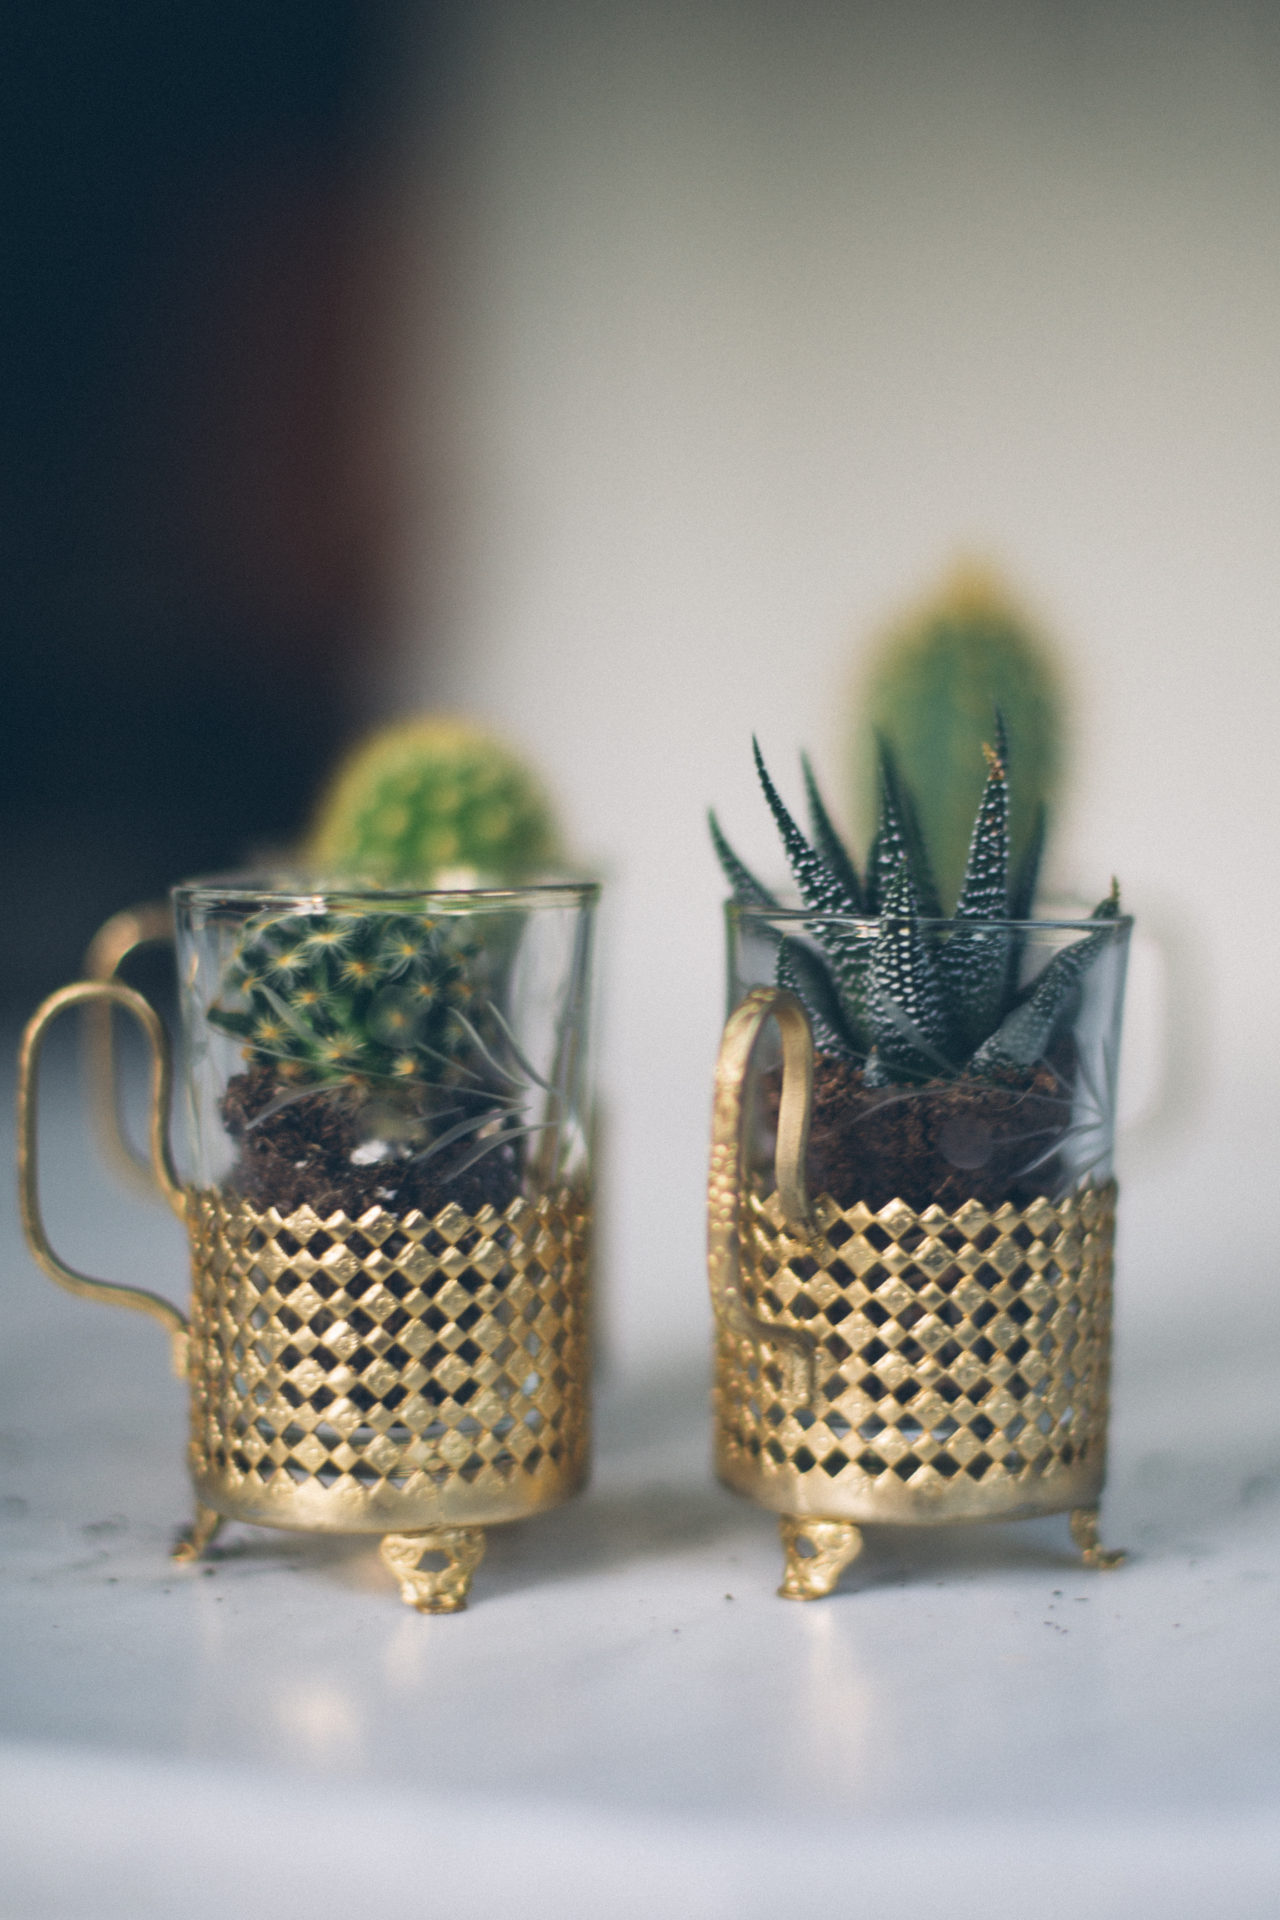 MrKate_Bouquet_of_The_Month_Cacti_Mini-25